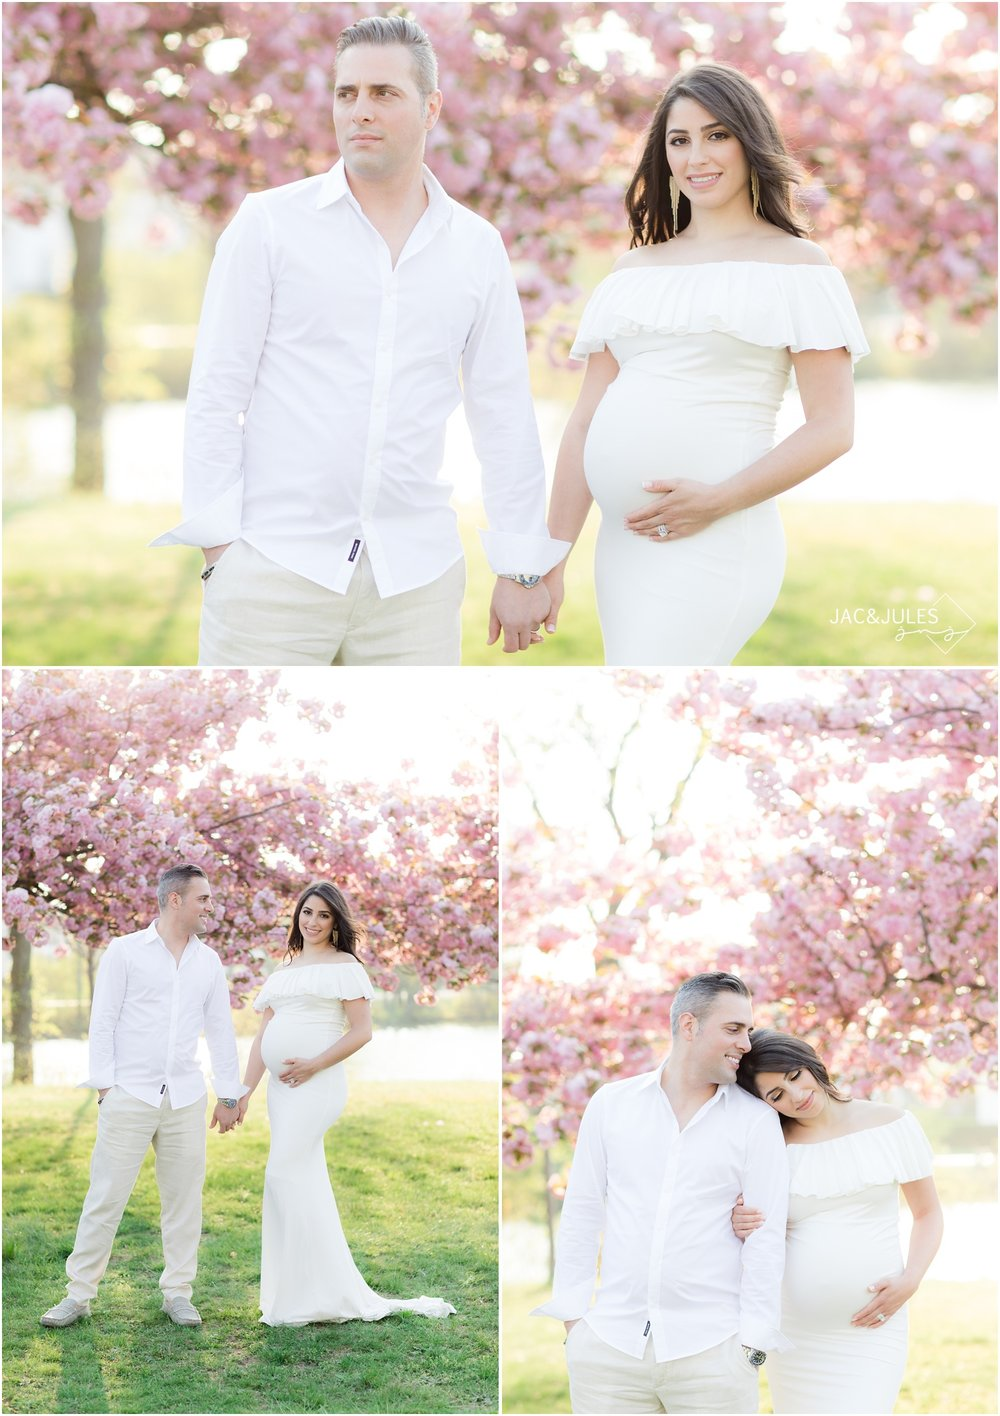 Pretty pregnancy photos with cherry blossoms at Divine Park in Spring Lake, NJ.